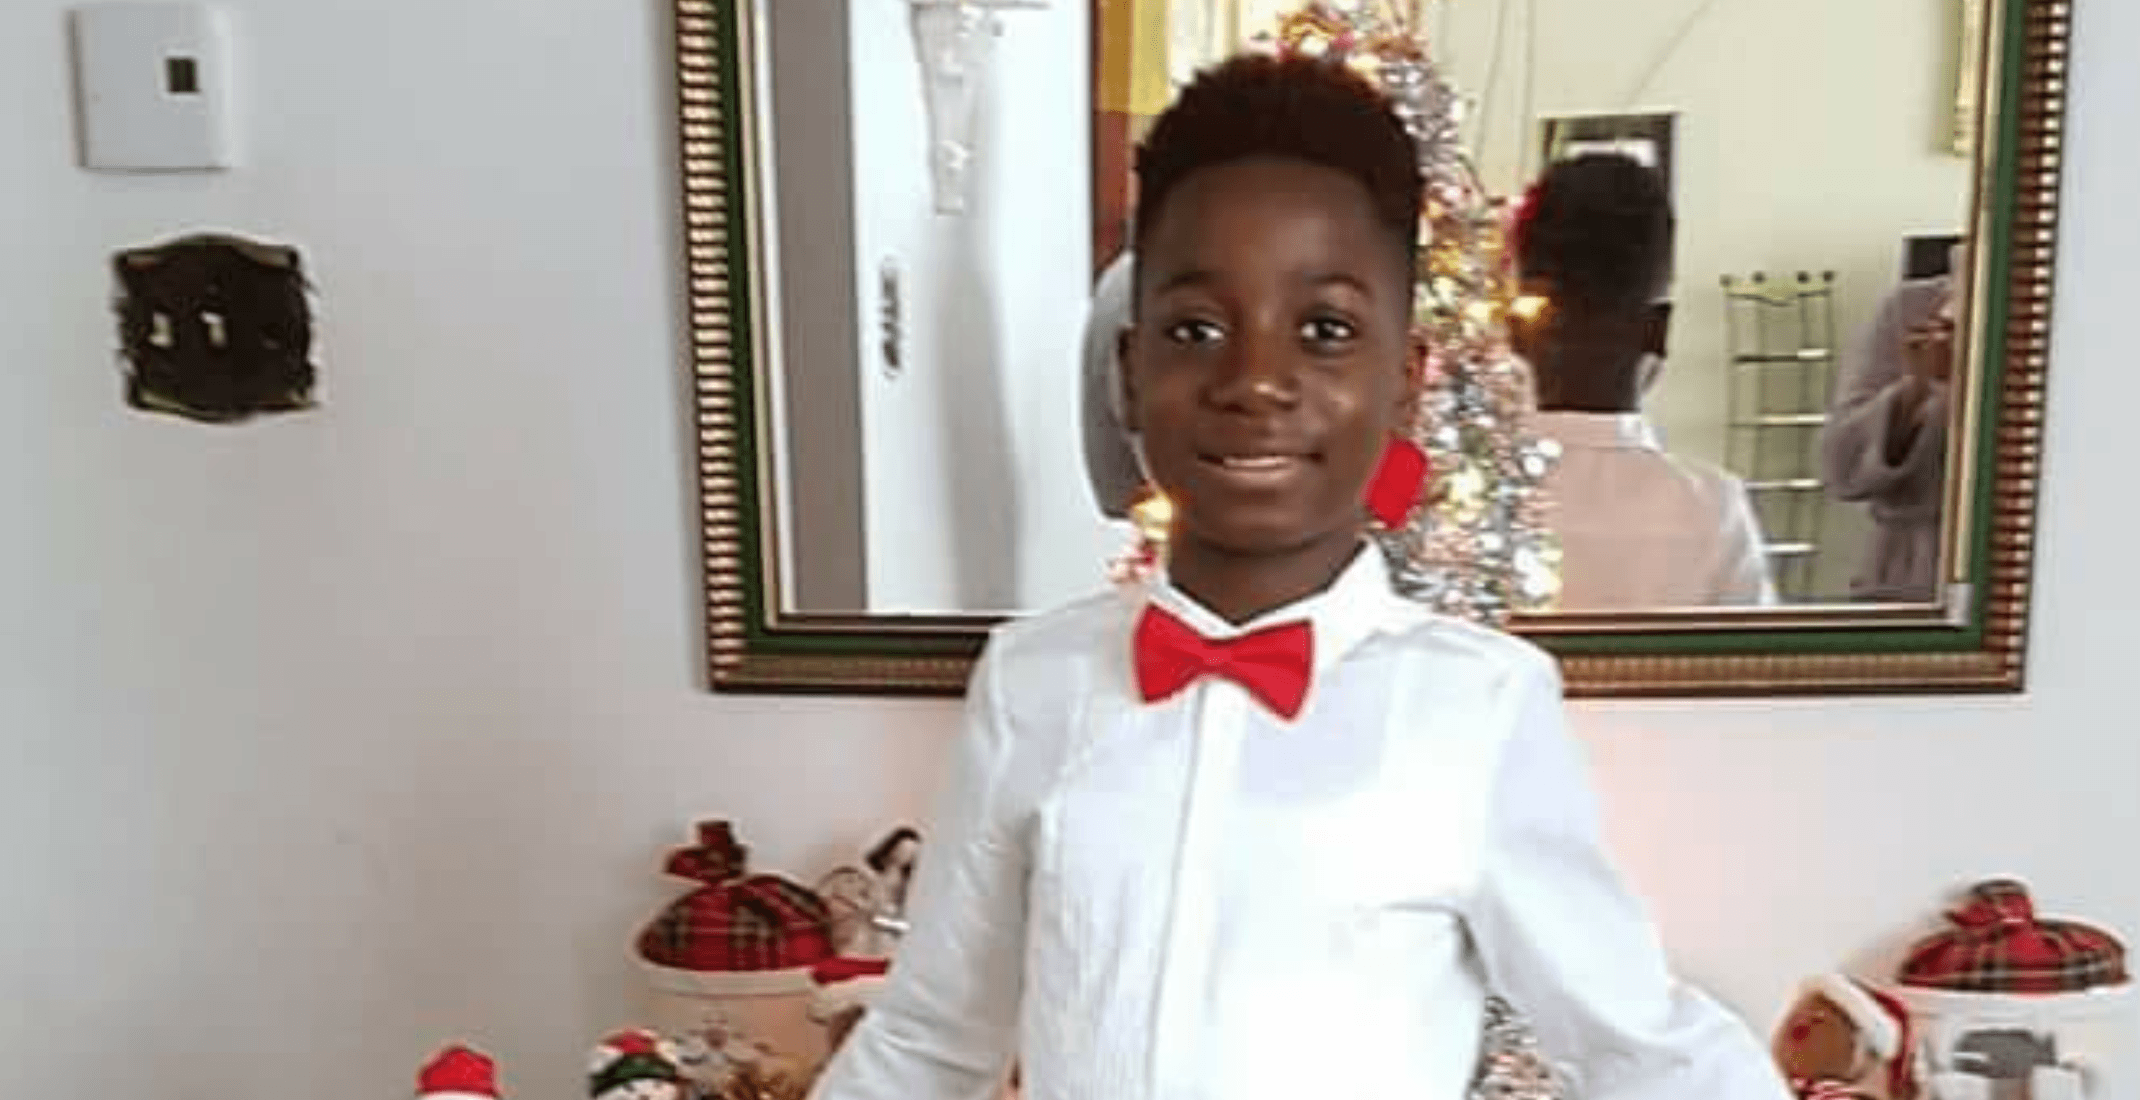 Police divers search river for missing 10-year-old Ariel Jeffrey Kouakou